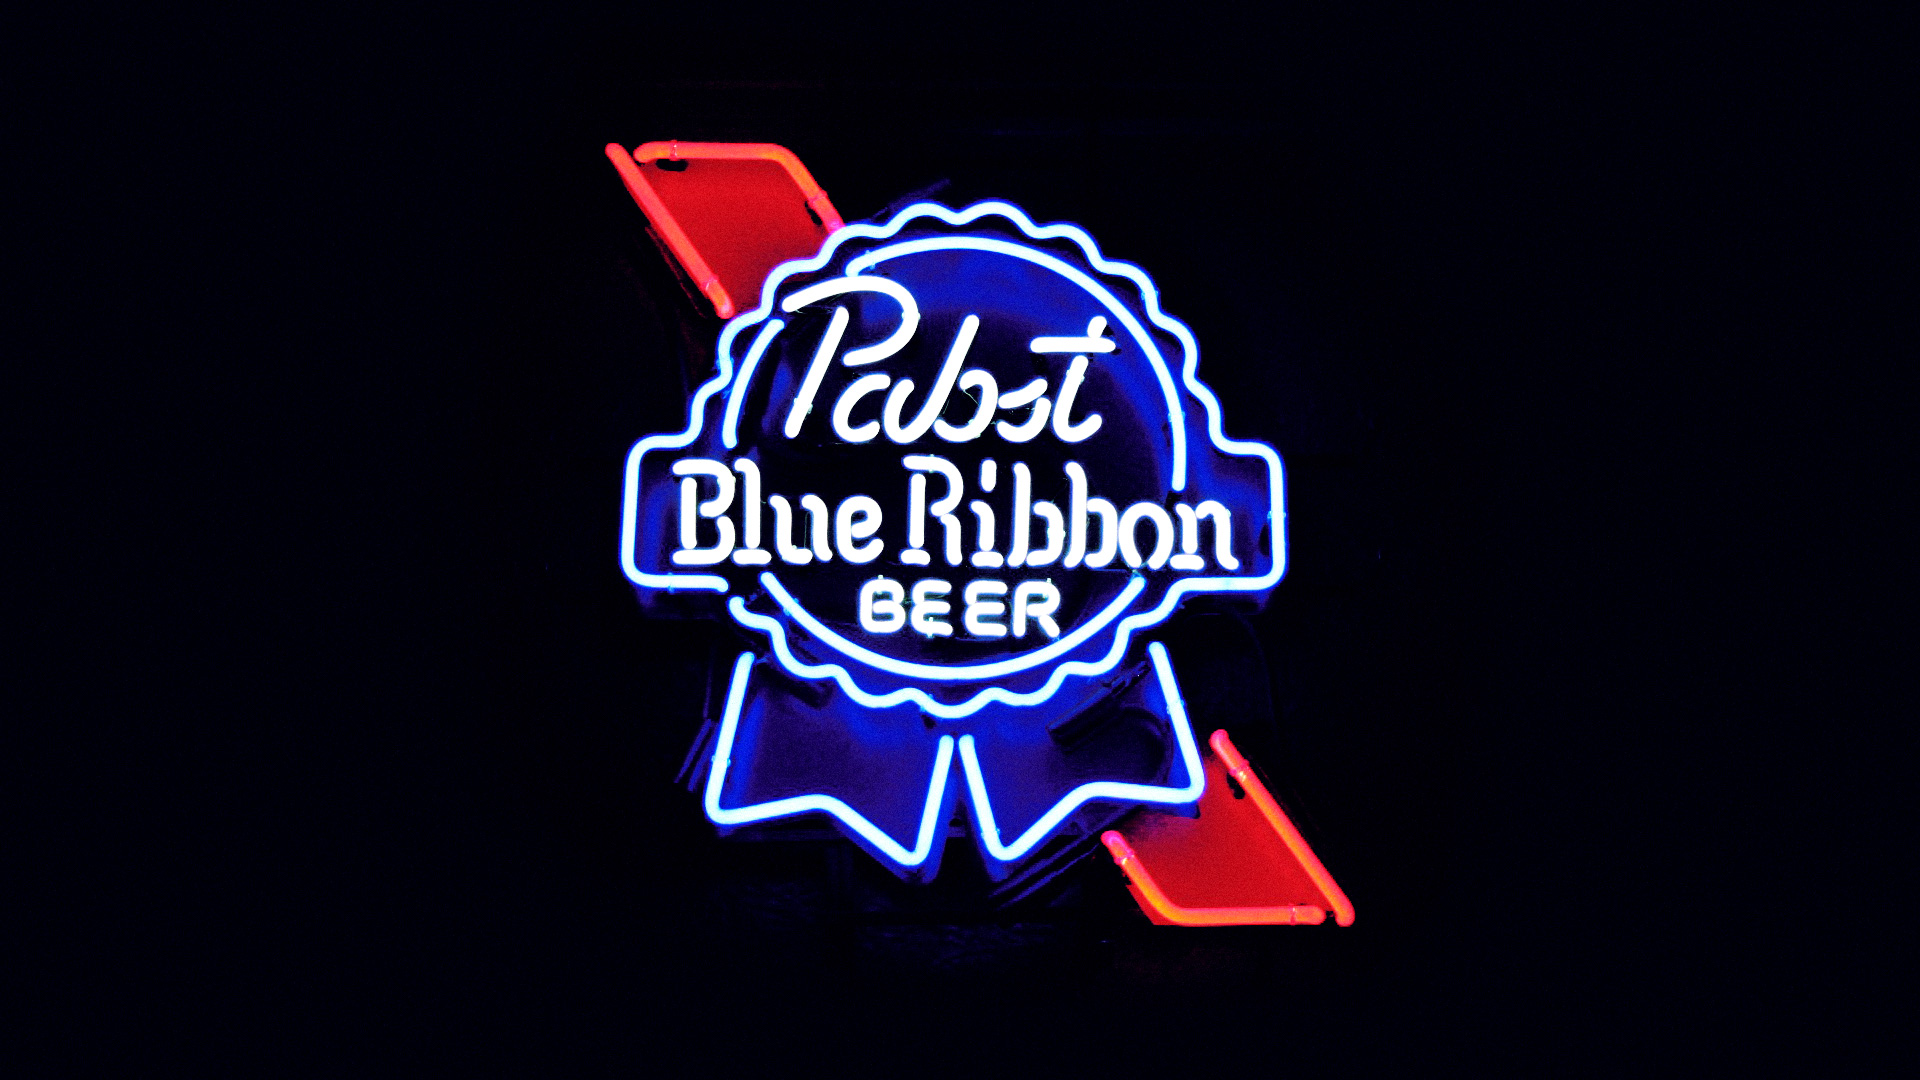 Pabst Blue Ribbon Wallpaper